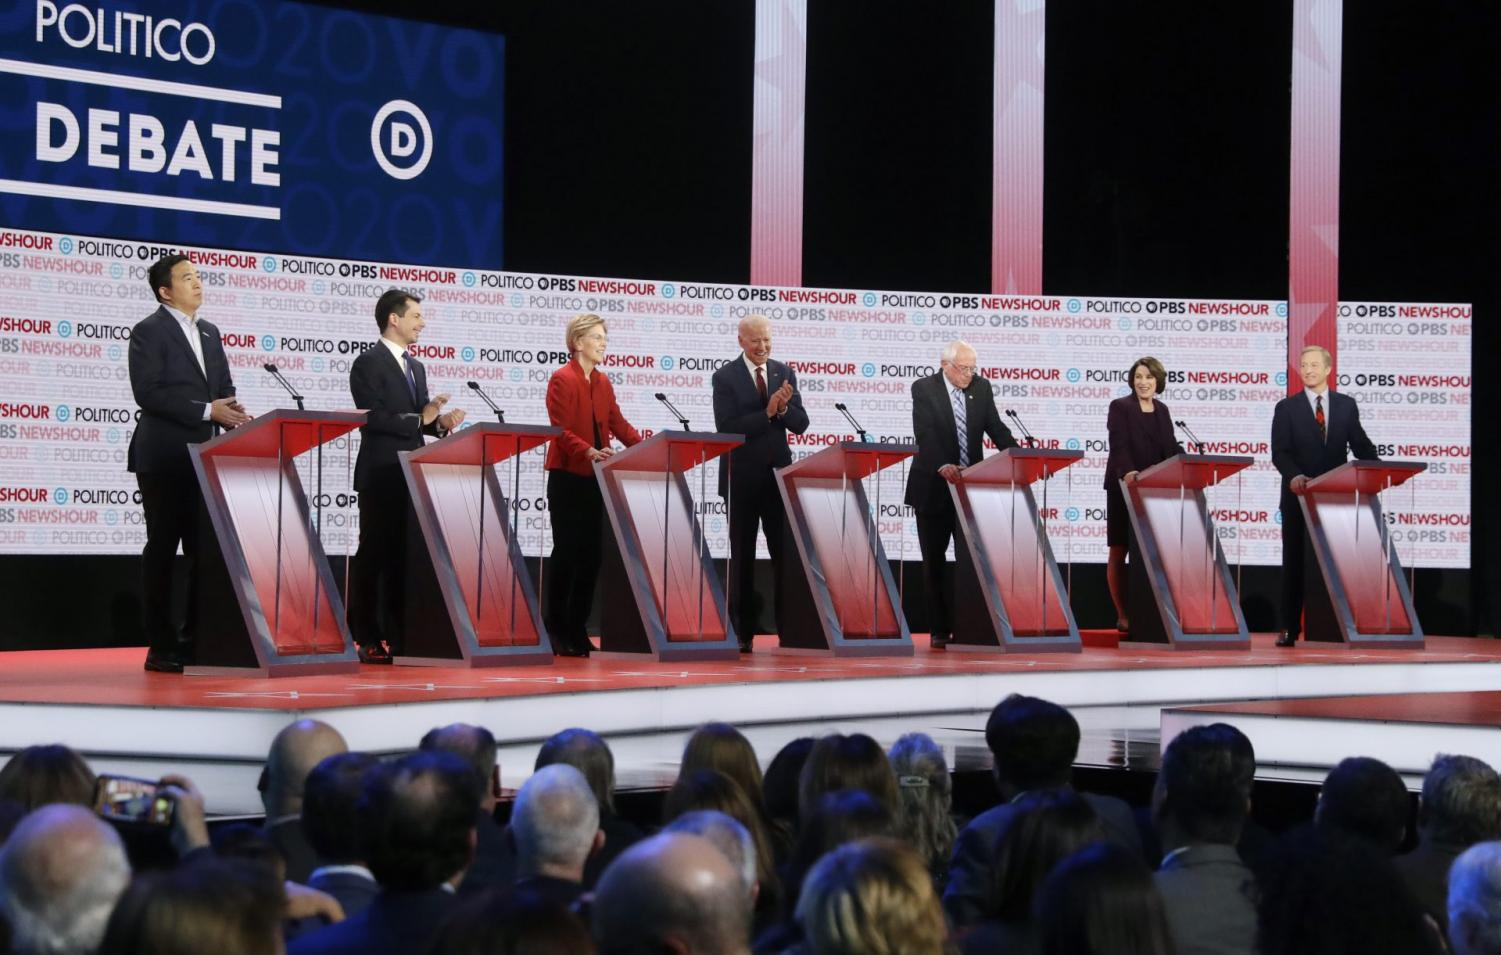 Democratic presidential candidates from left, entrepreneur Andrew Yang, South Bend Mayor Pete Buttigieg, Sen. Elizabeth Warren, D-Mass., former Vice President Joe Biden, Sen. Bernie Sanders, I-Vt., Sen. Amy Klobuchar, D-Minn., and businessman Tom Steyer participate in a Democratic presidential primary debate Thursday, Dec. 19, 2019, in Los Angeles.